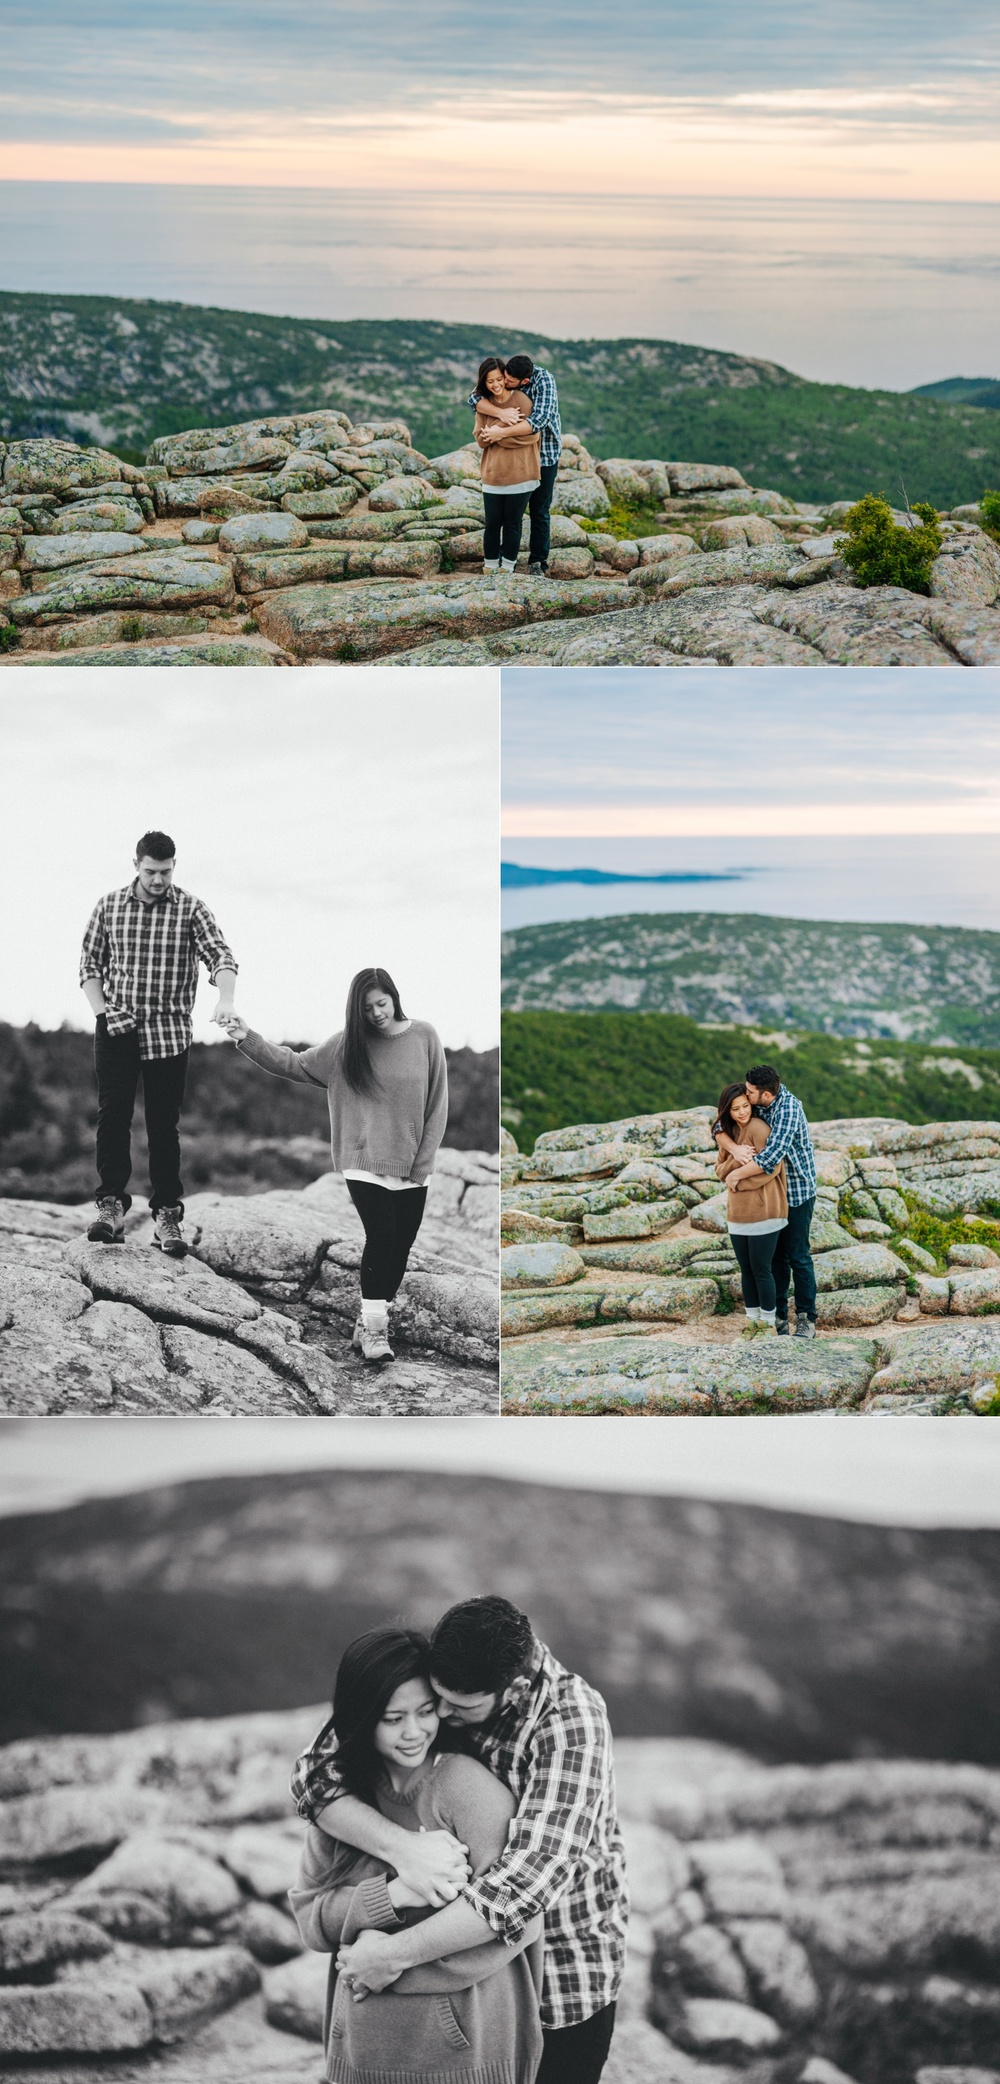 jake and jill acacdia national park engagement session cadillac mountain engagement session jordan pond engagement session maine engagement session jake and katie_0010